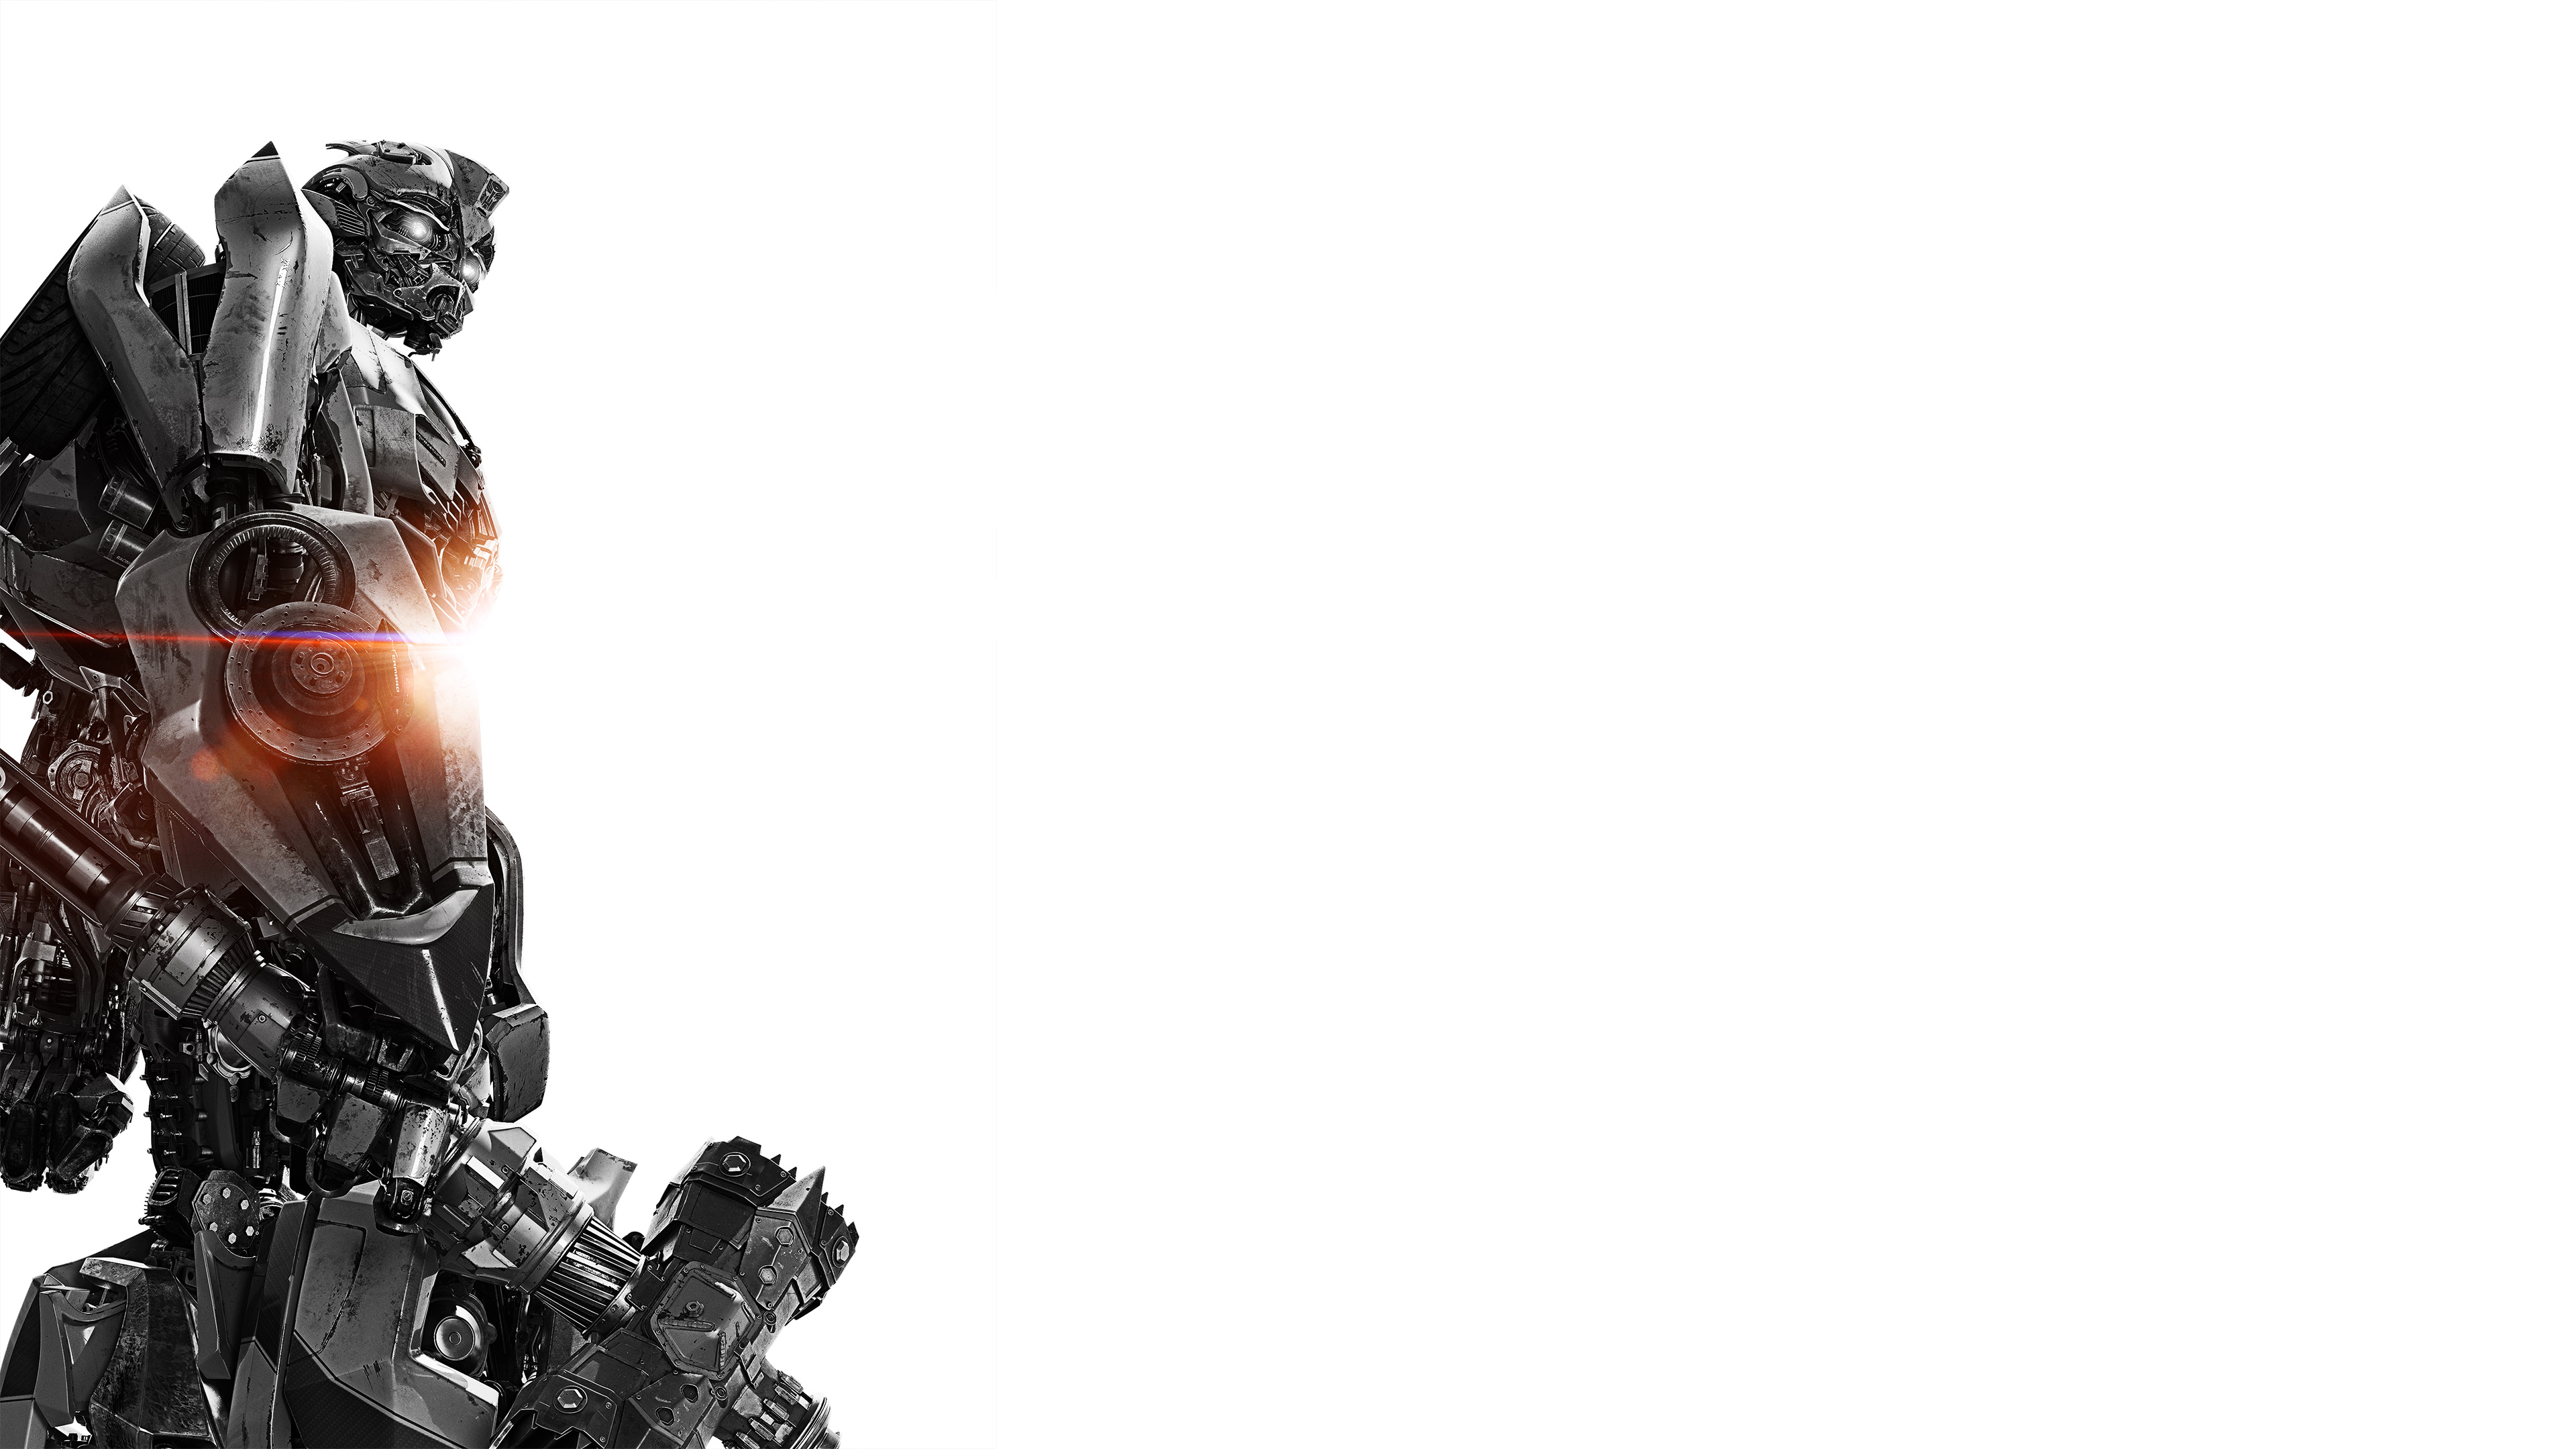 Transformers The Last Knight Bumblebee, HD Movies, 4k Wallpapers, Images, Backgrounds, Photos ...